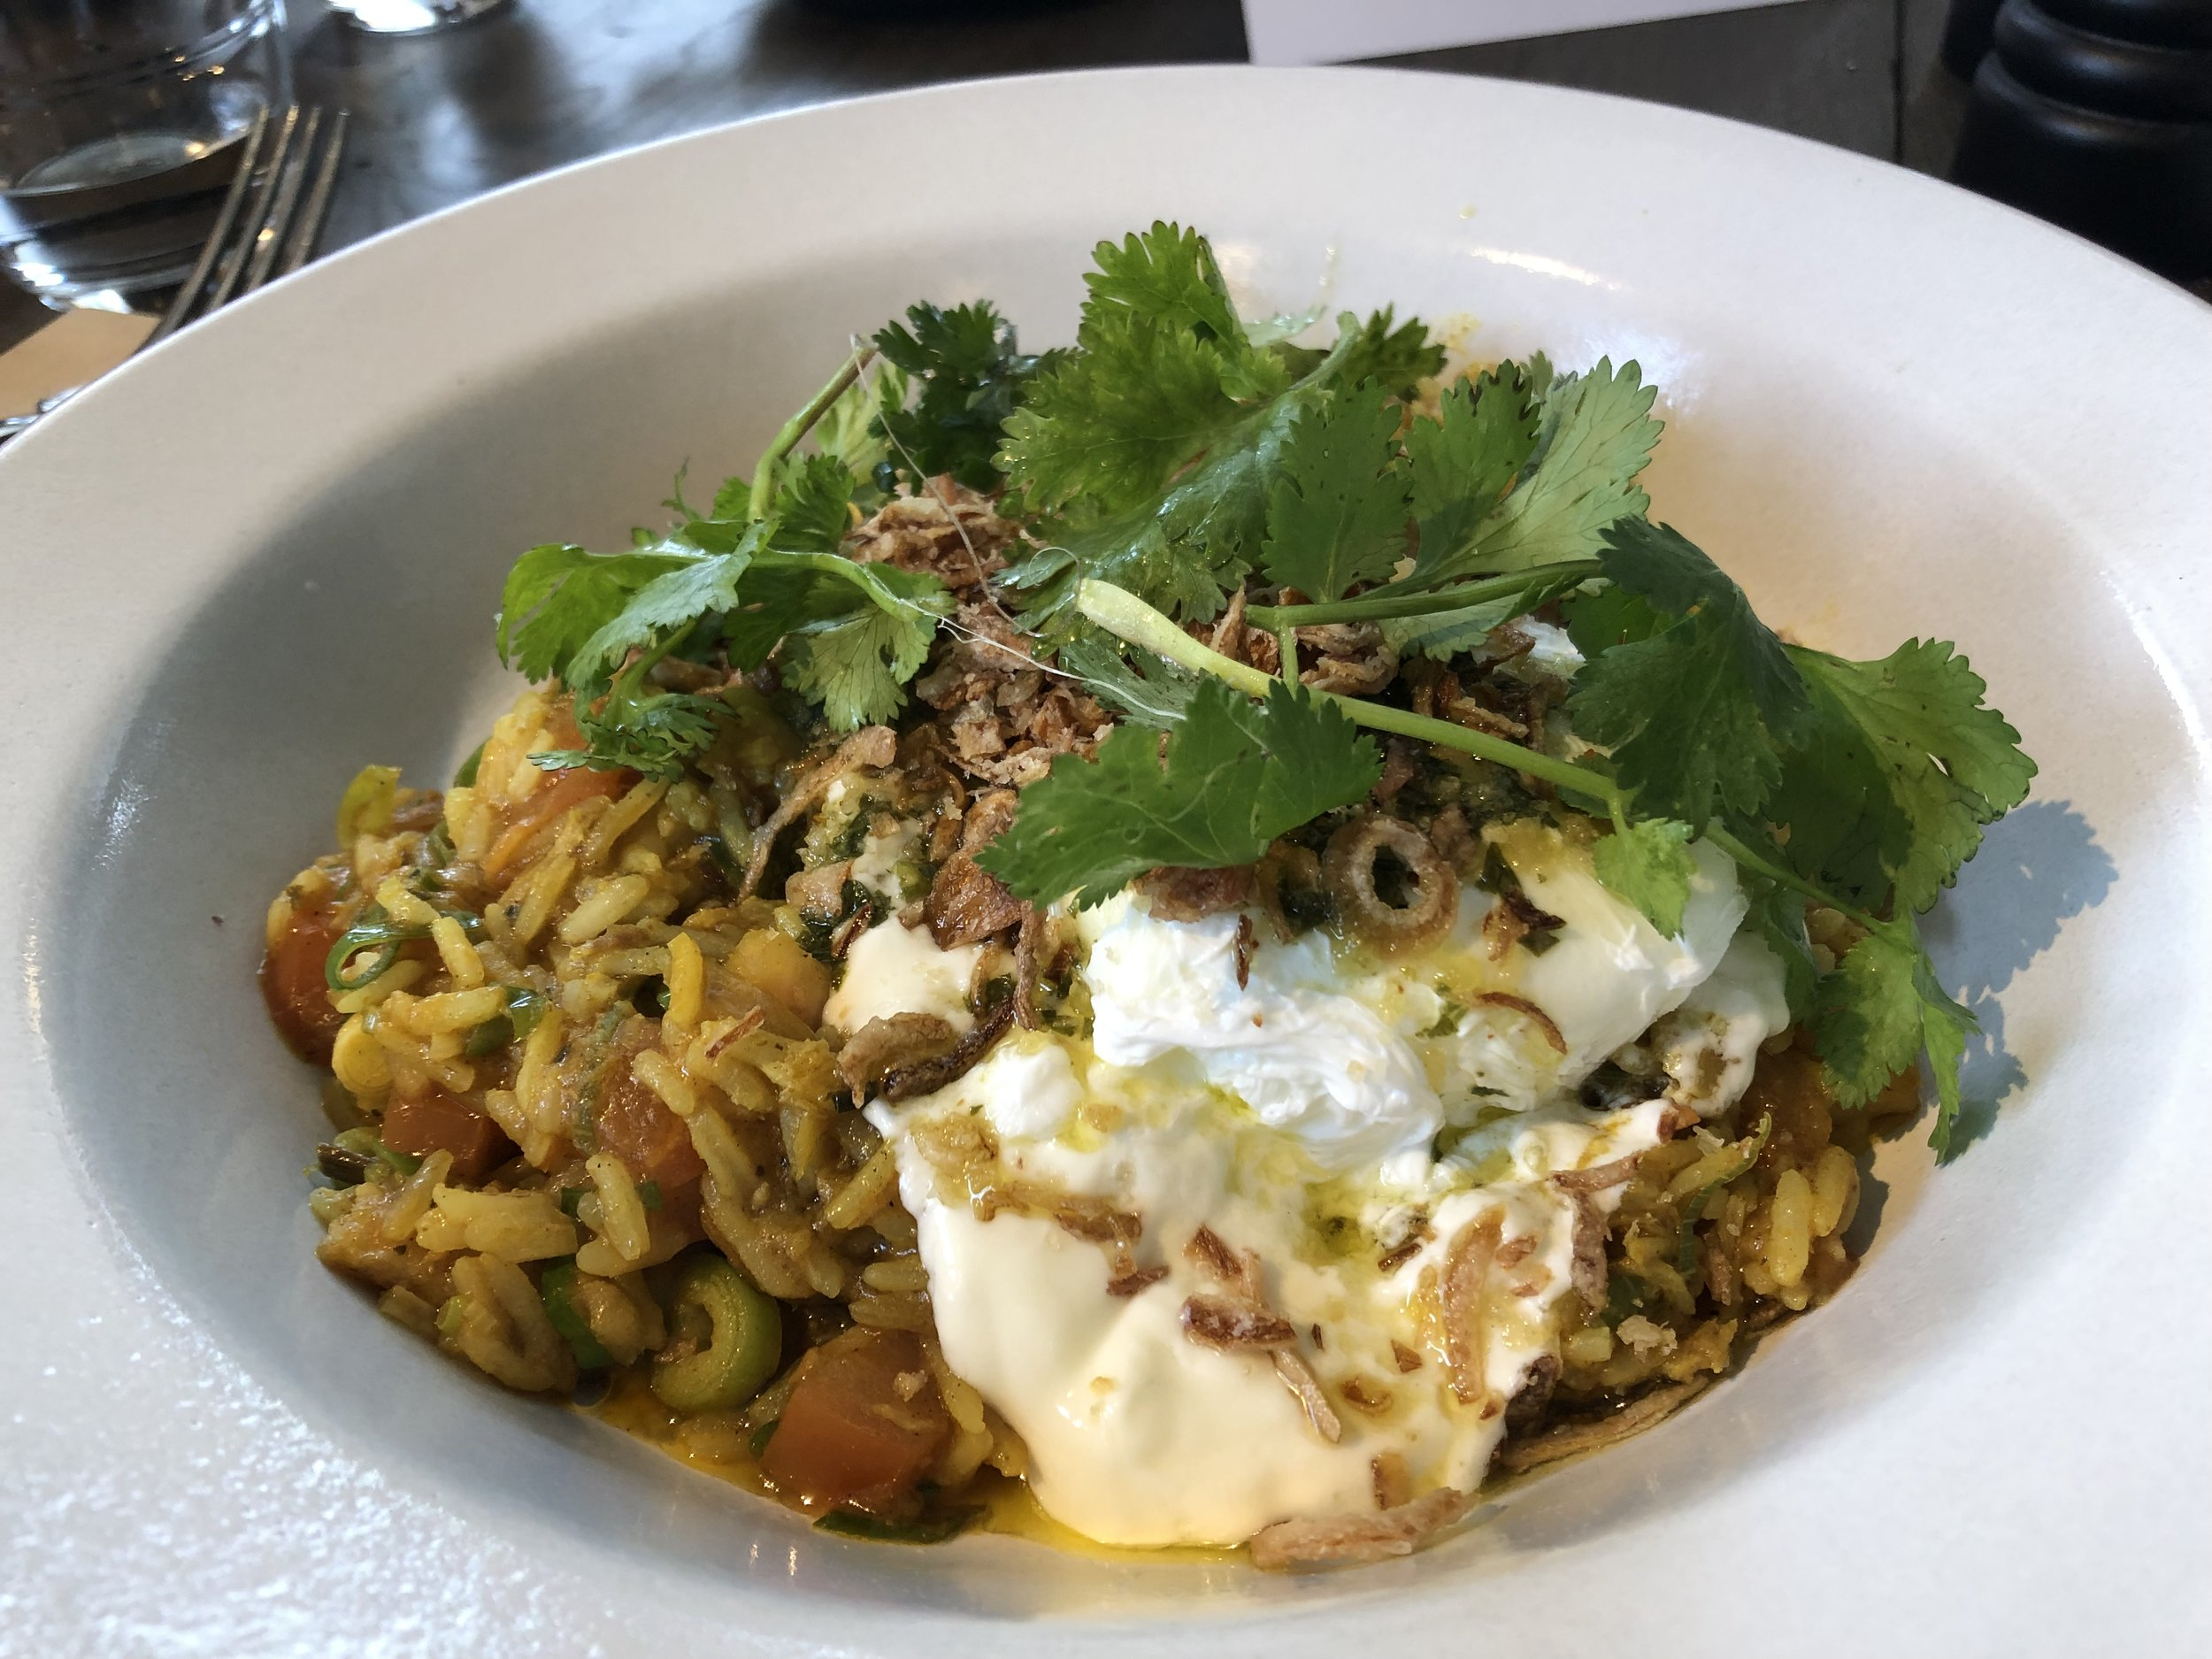 Smoked fish kedgeree with poached egg, fried shallots, labneh and chimichurri